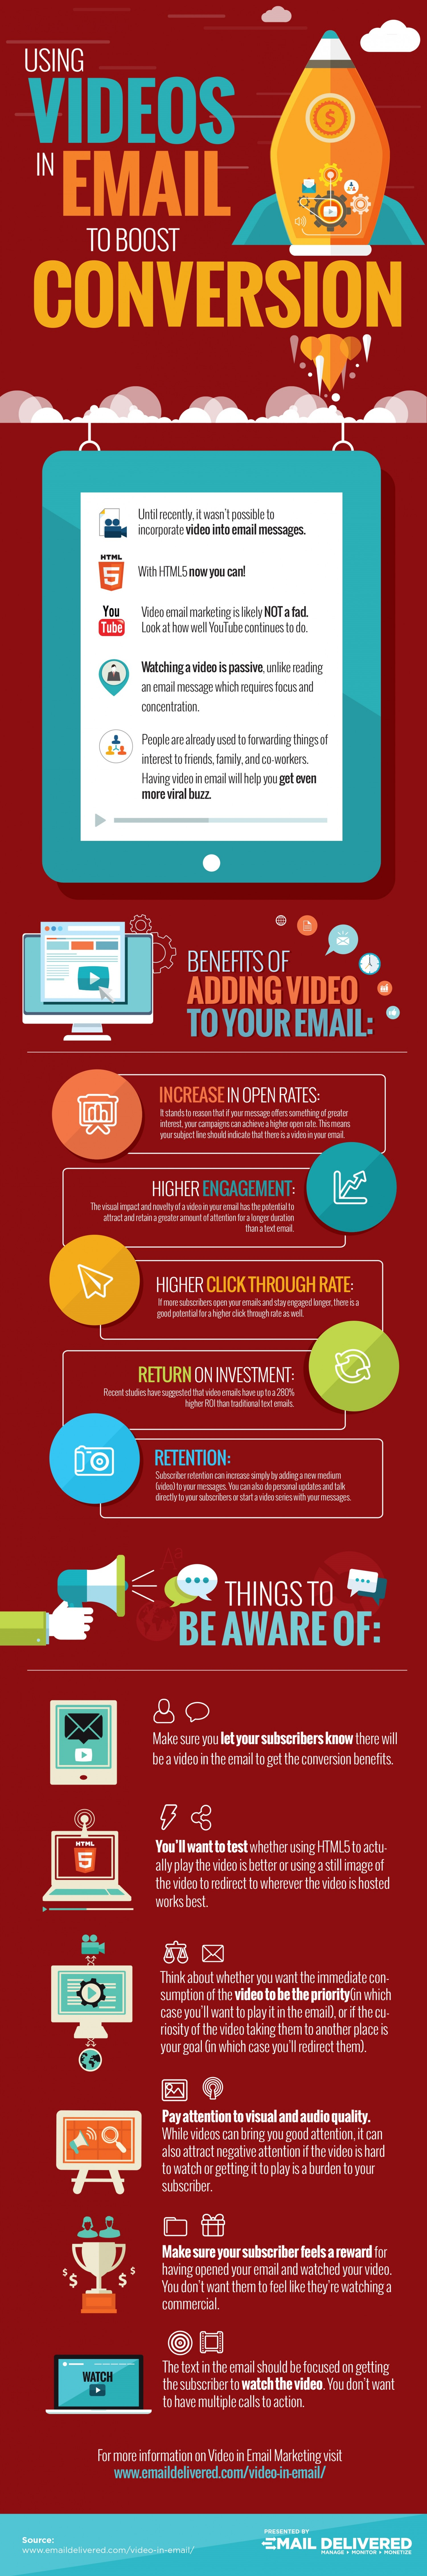 Using Video in Email to Boost Conversion